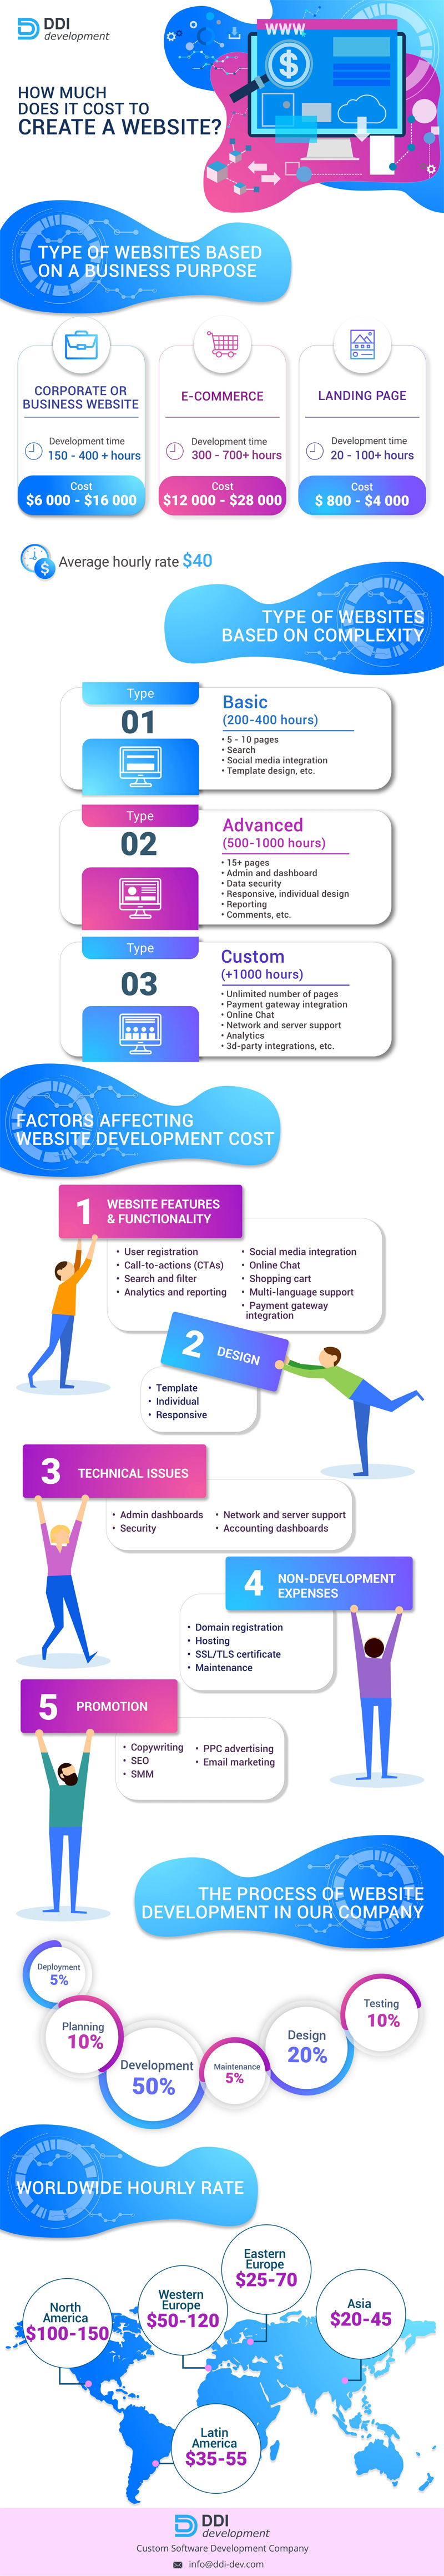 How Much Does it Cost to Develop a Website?